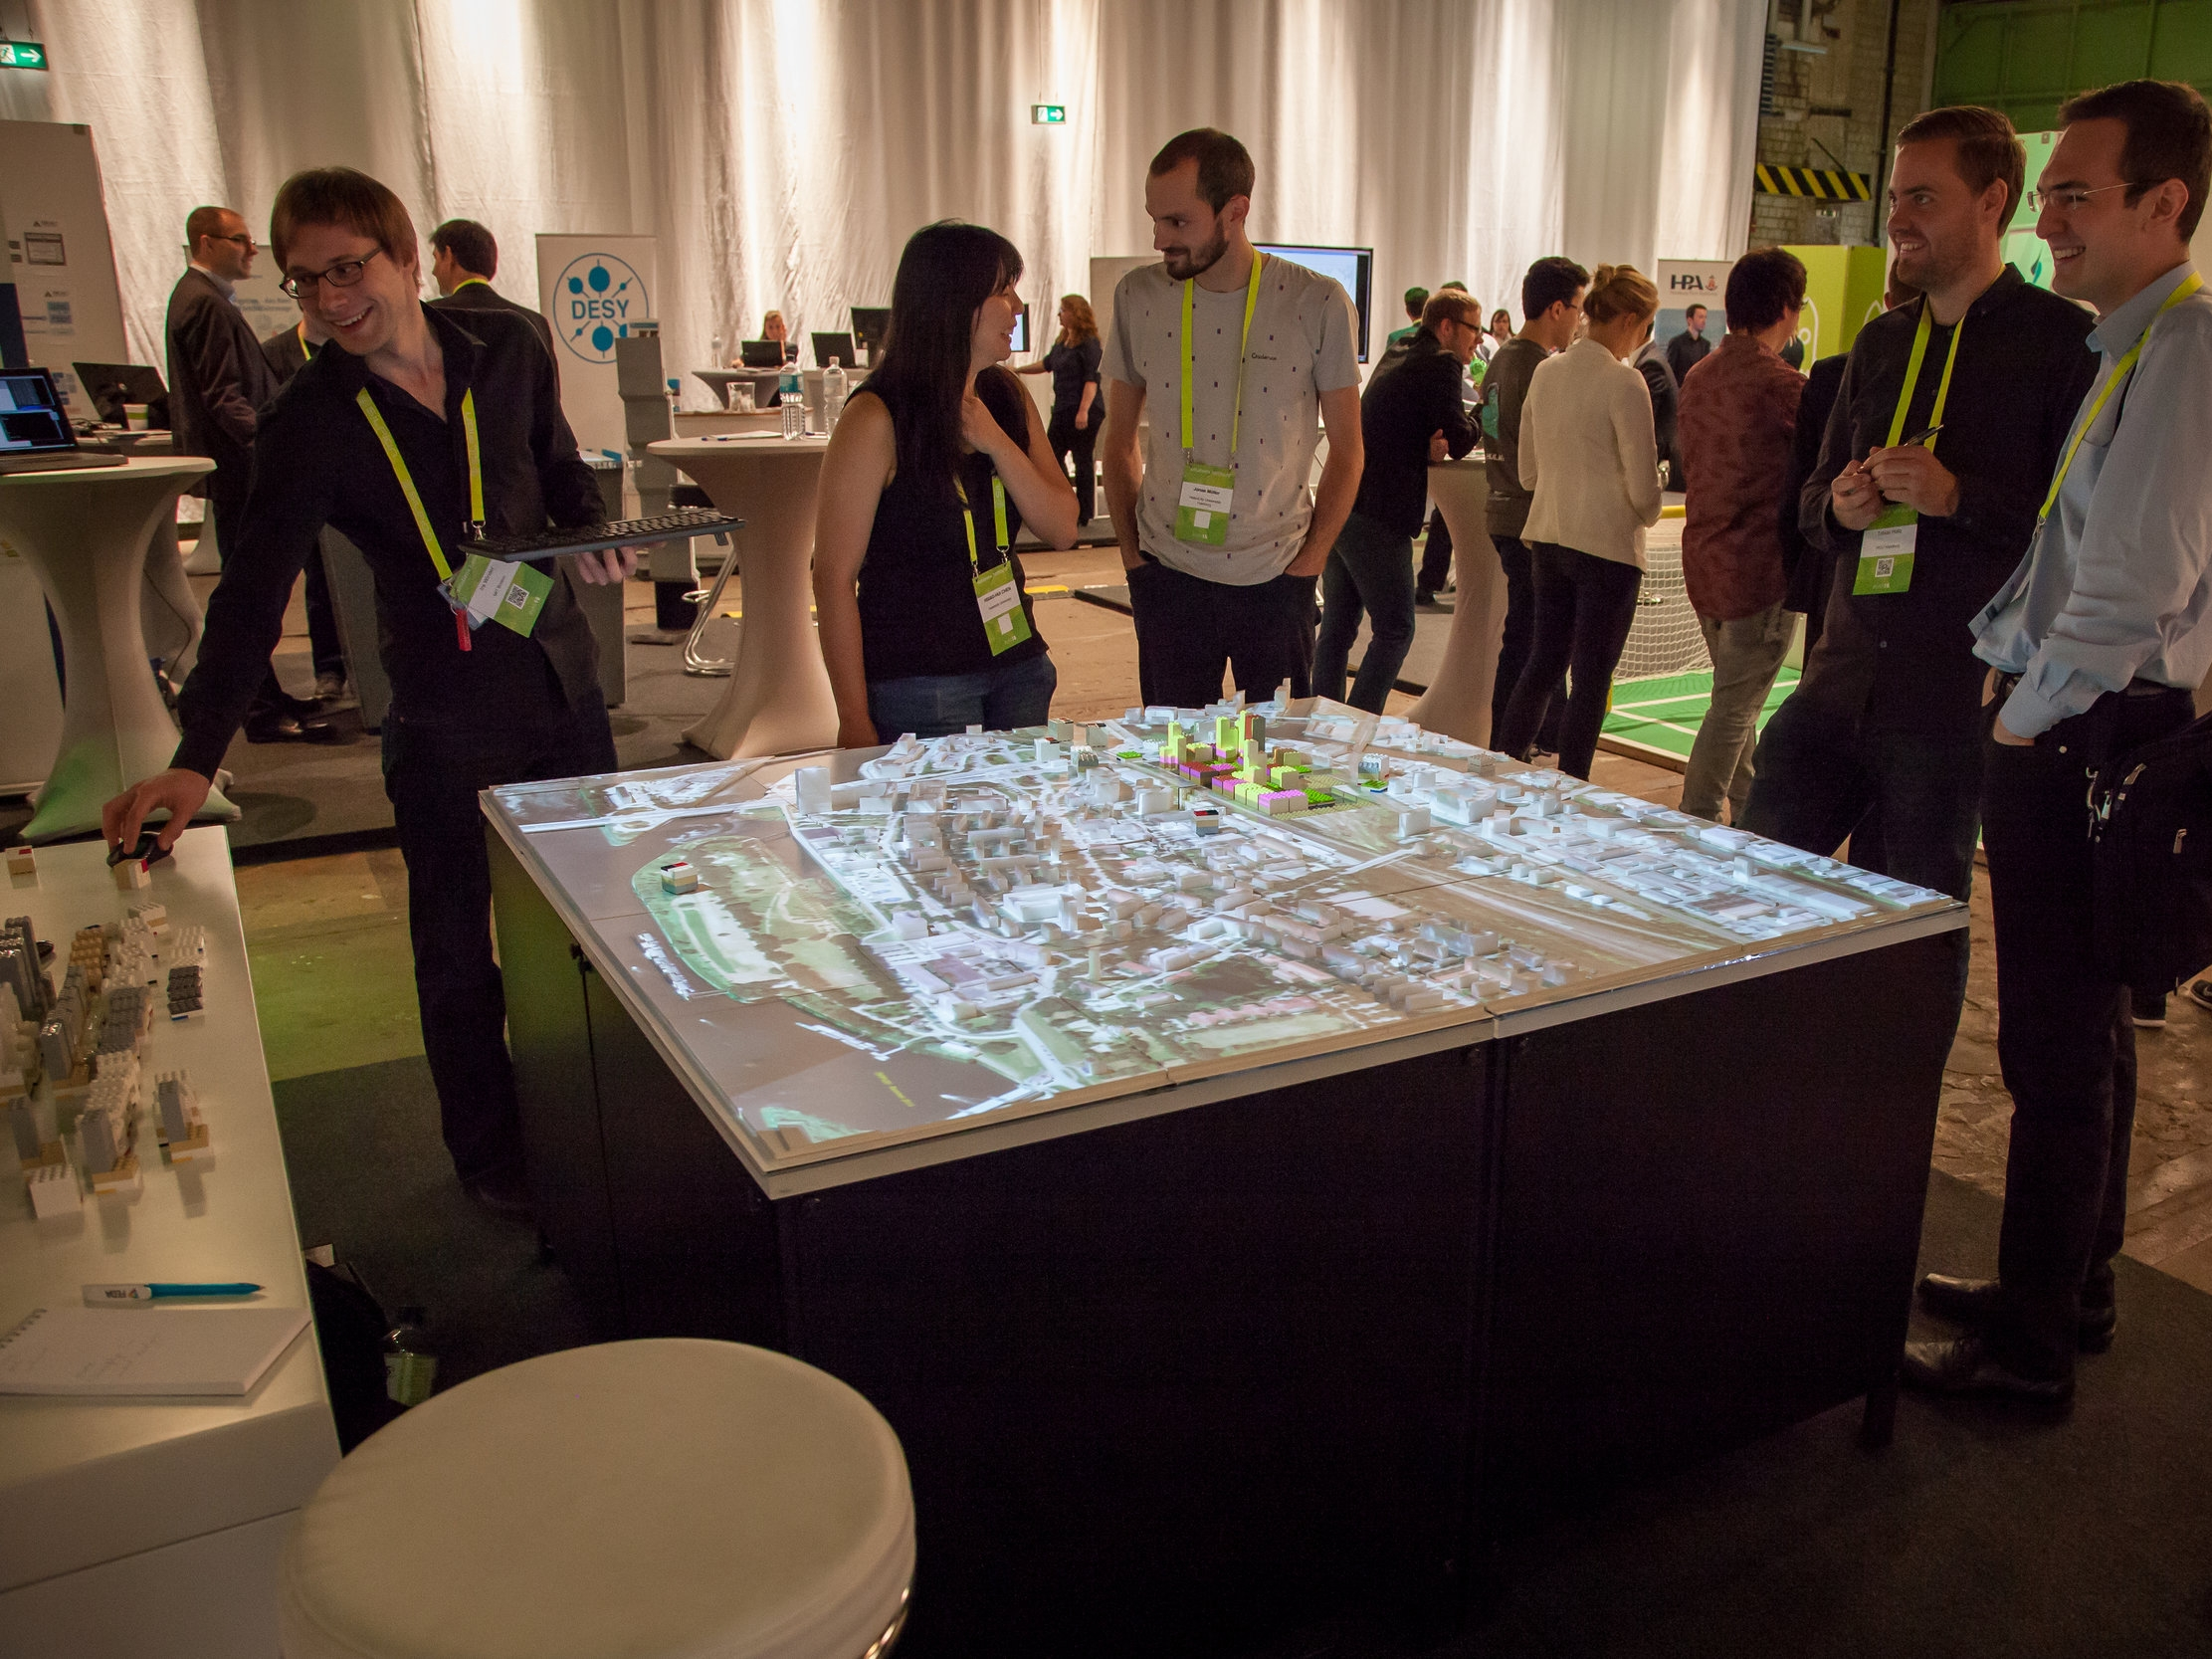 Hamburg Solutions Conference - Hacking the Tactile Matrix with Hafencity University Students. Photo by Benno Tobler Ziemer